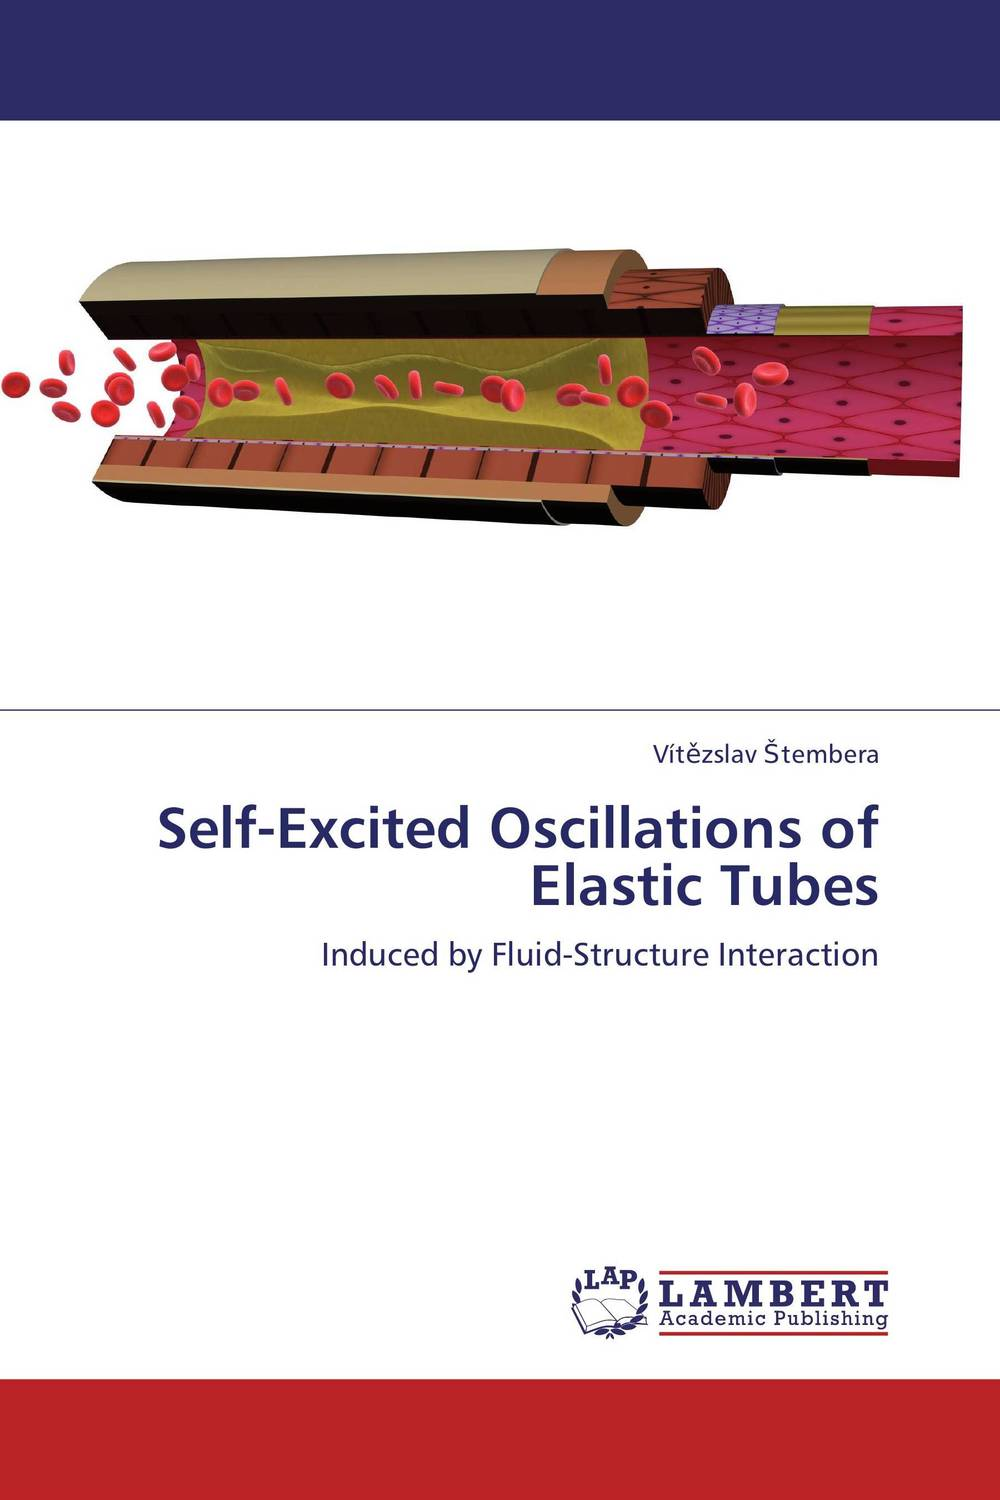 Self-Excited Oscillations of Elastic Tubes